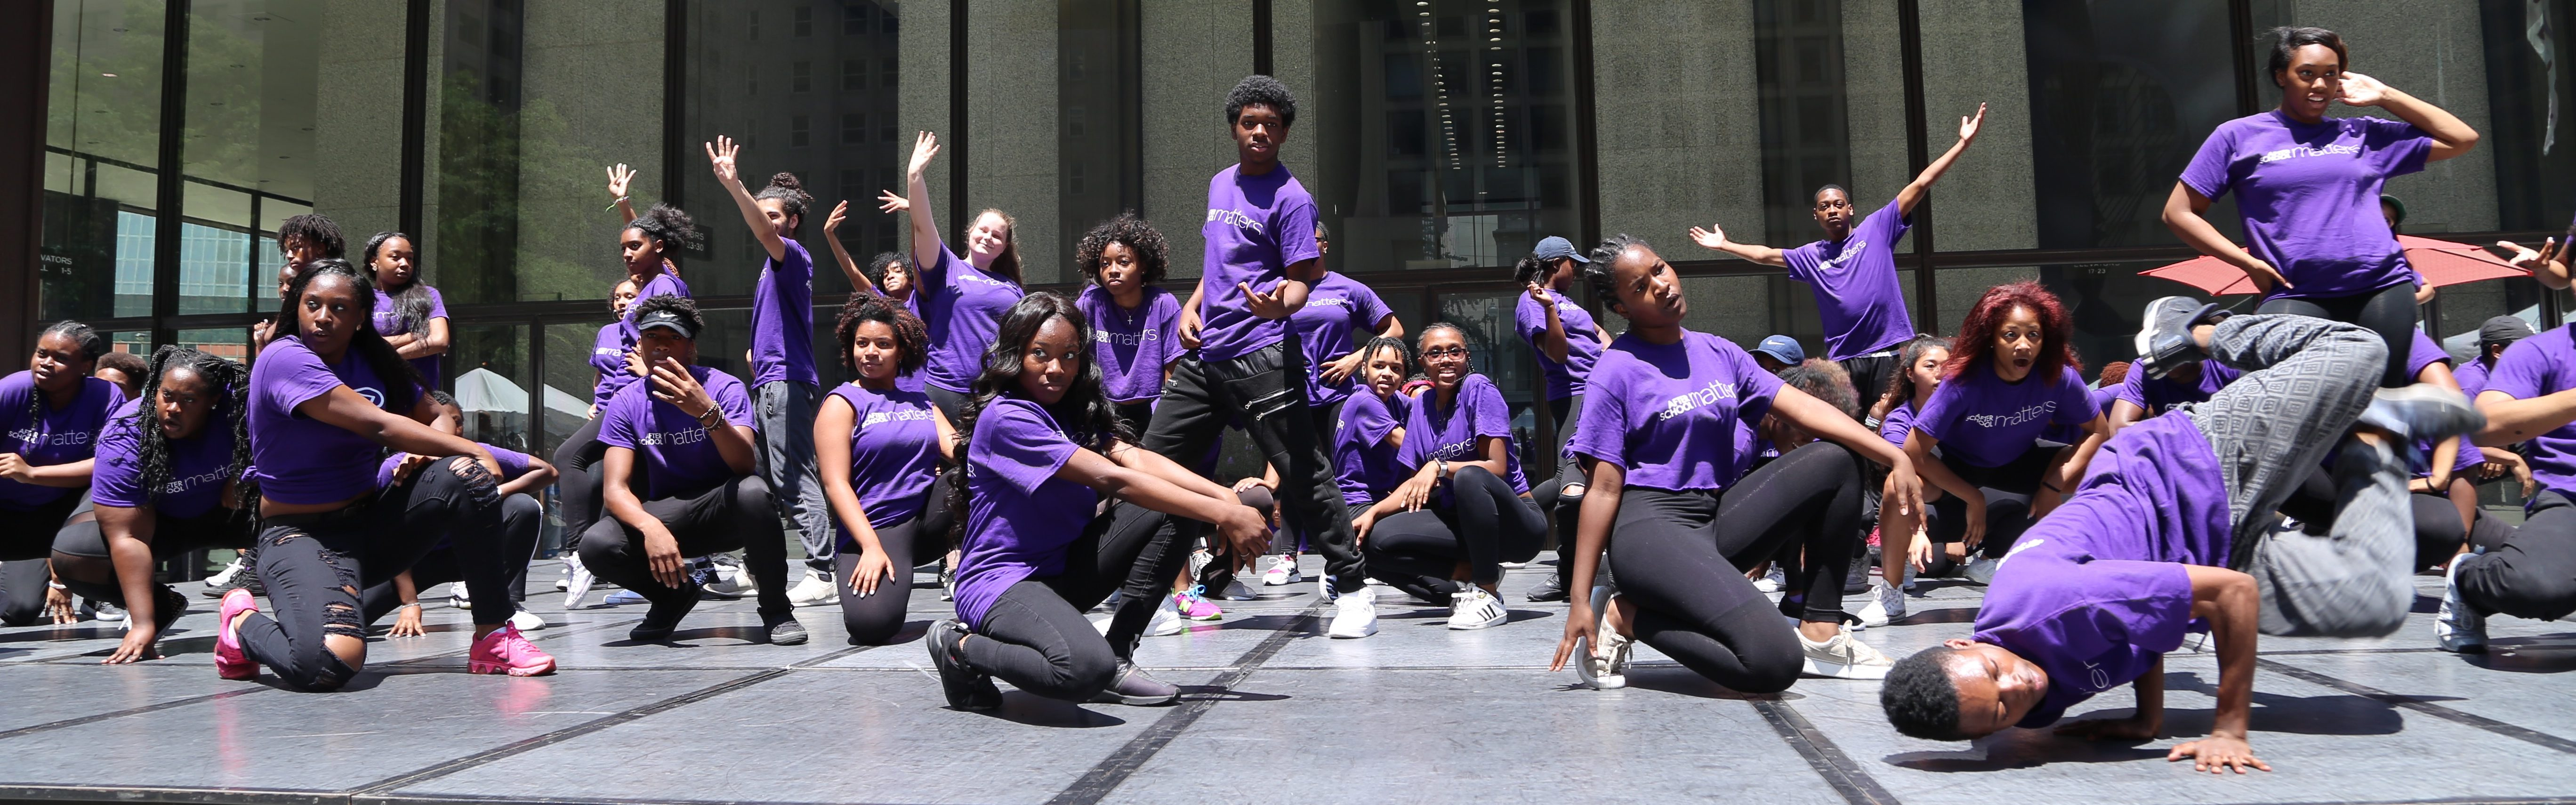 <h2>Spend your summer with us!</h2><div class='clear'></div><div class='gal_content'><p><p>Apply TODAY for summer programs!</p> <a href='https://youthreadychicago.cityspan.com/Web/sms/OnlineEnrollment/Summer2018/Application.asp'>It's what matters > </a></p></div>